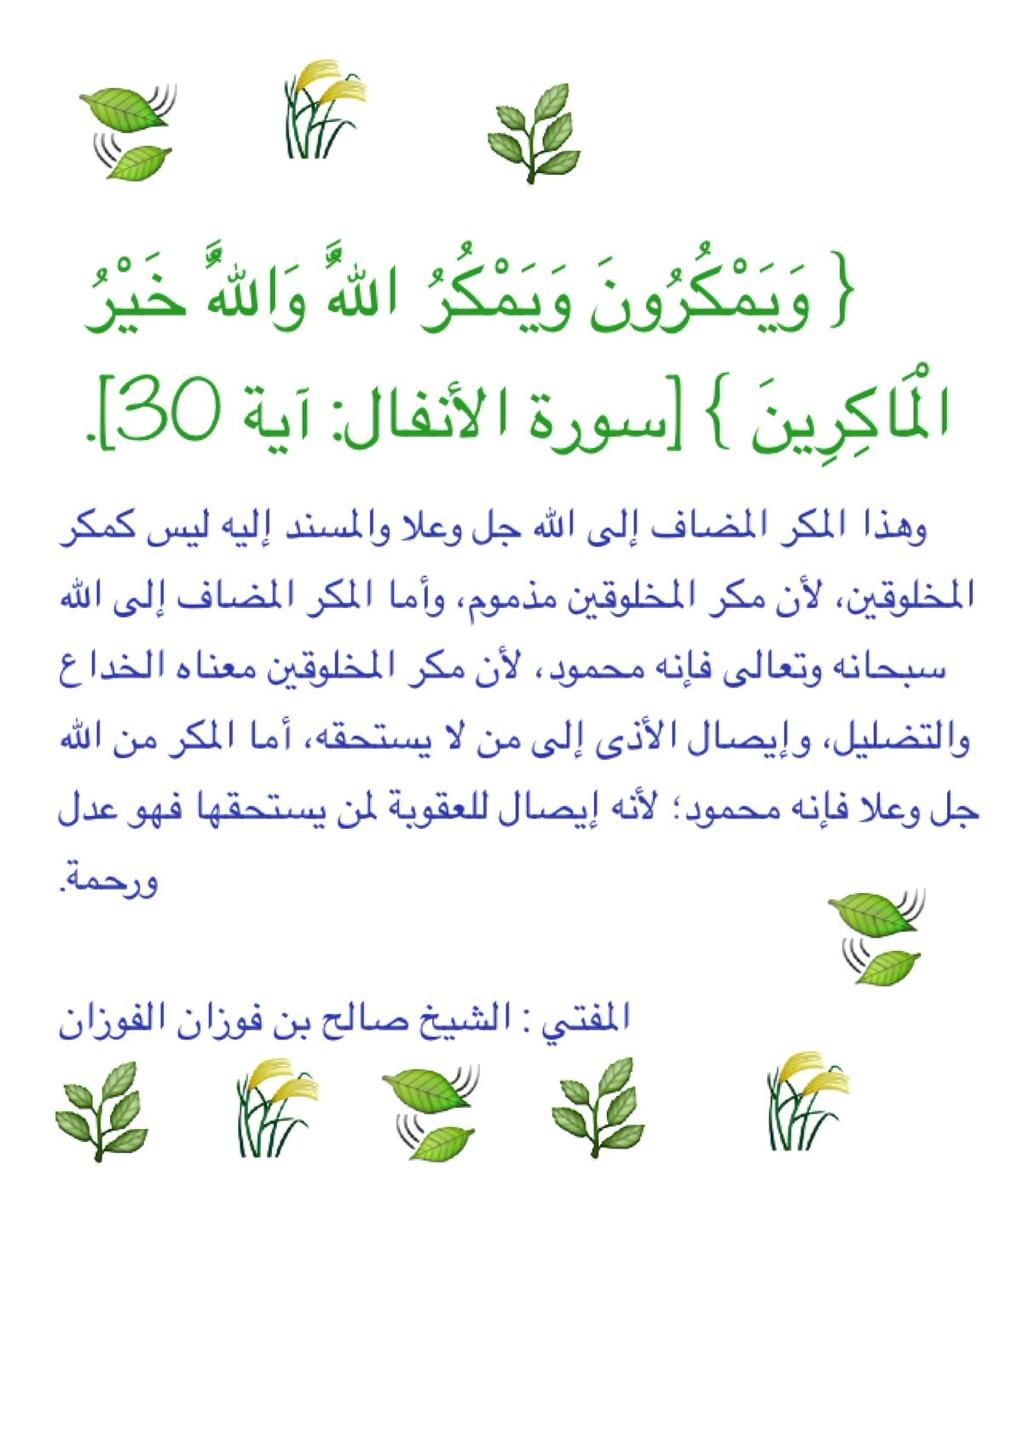 وبالوالدين احسانا On Twitter Quran Quotes Beautiful Quran Quotes Islamic Inspirational Quotes